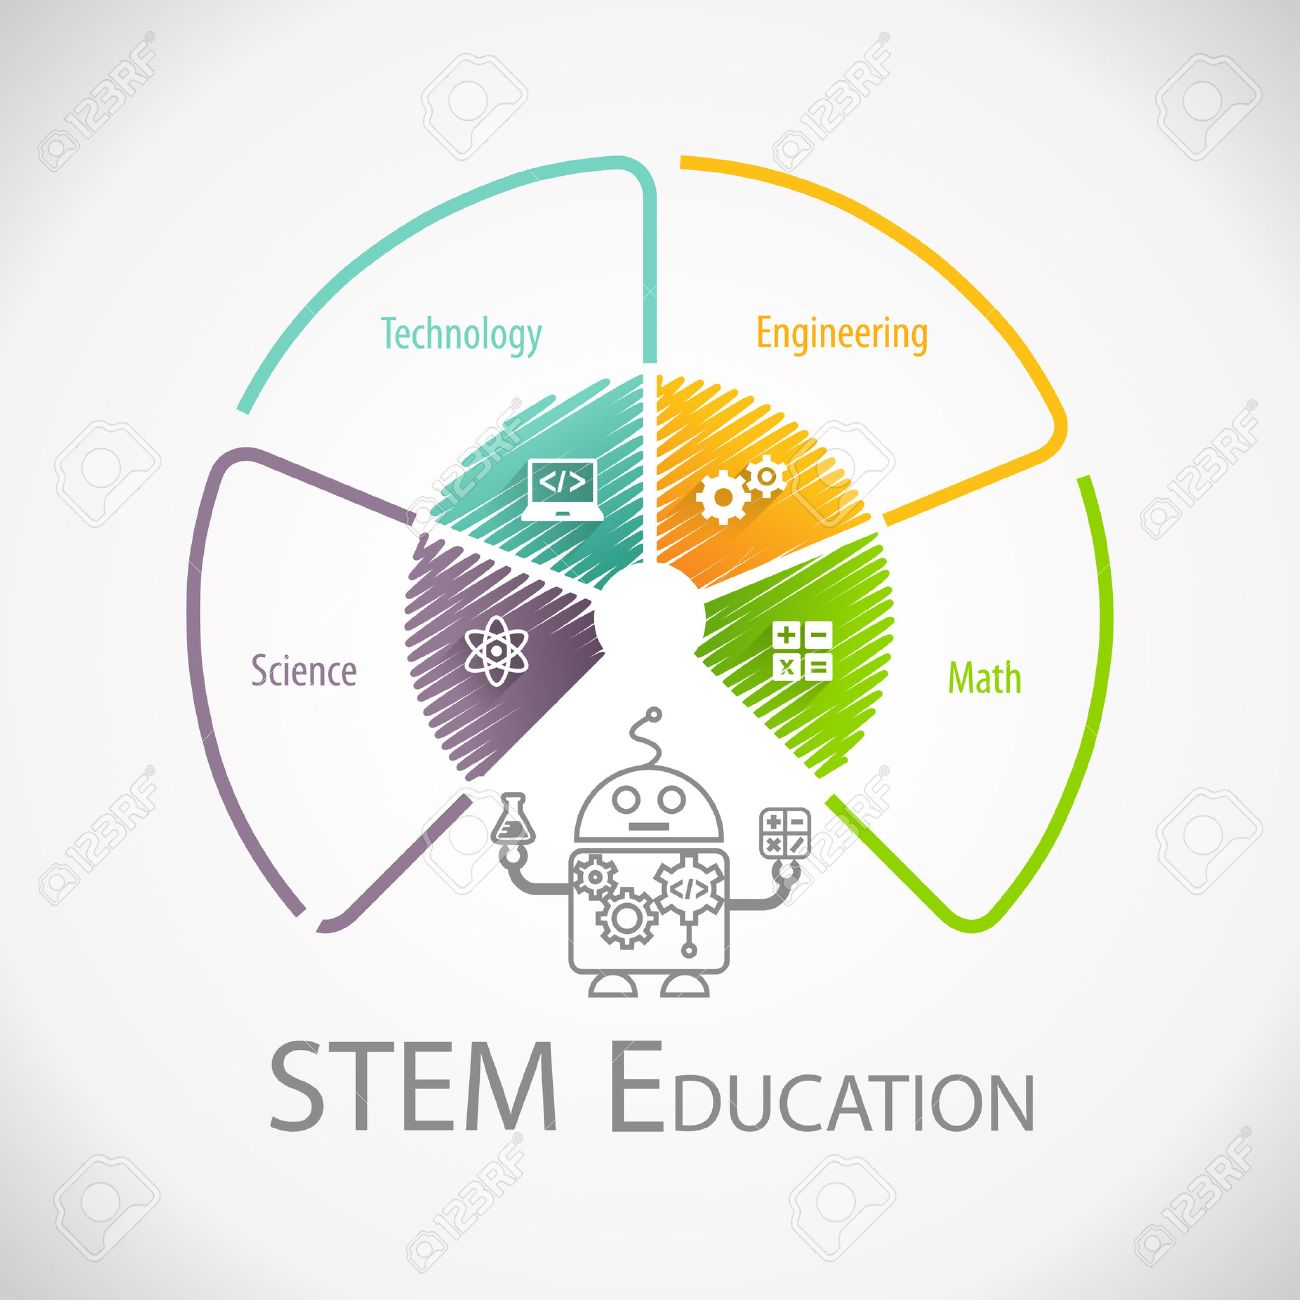 Stem education wheel science technology engineering mathematics stem education wheel science technology engineering mathematics stock photo 65230117 ccuart Images